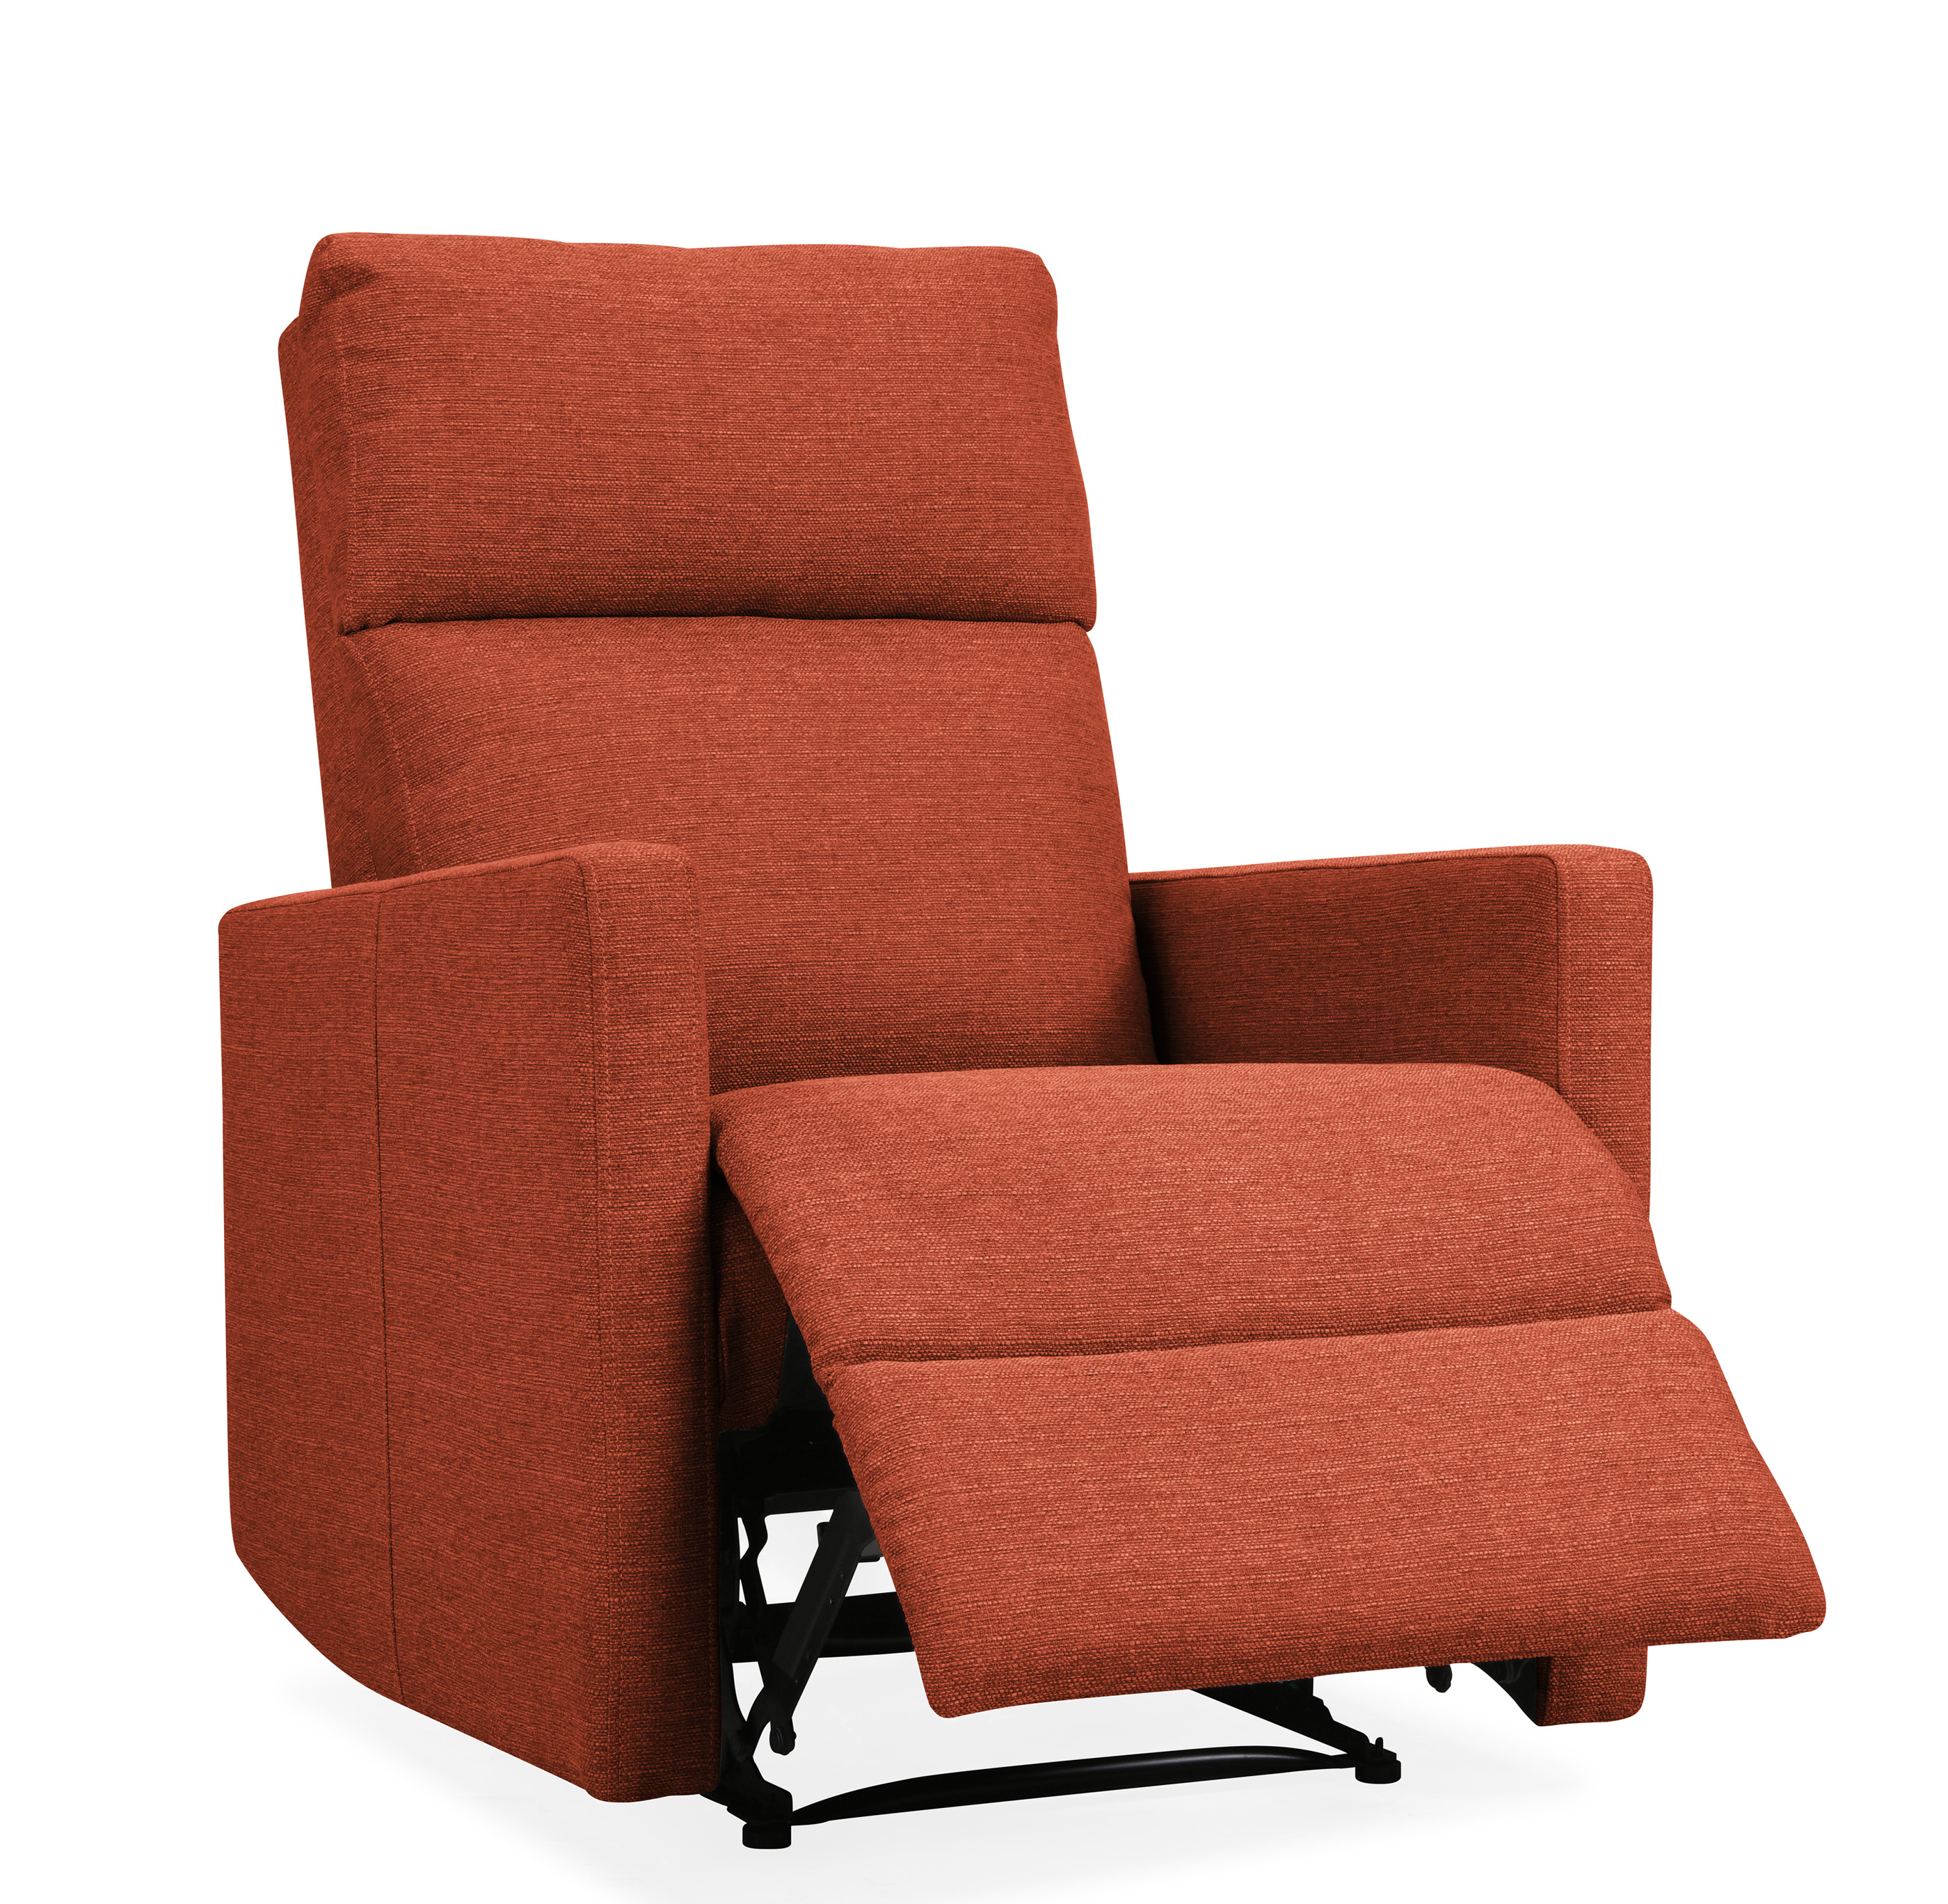 Ovid Power Wall Hugger Reclining Chair With USB Port, Multiple Colors    Walmart.com